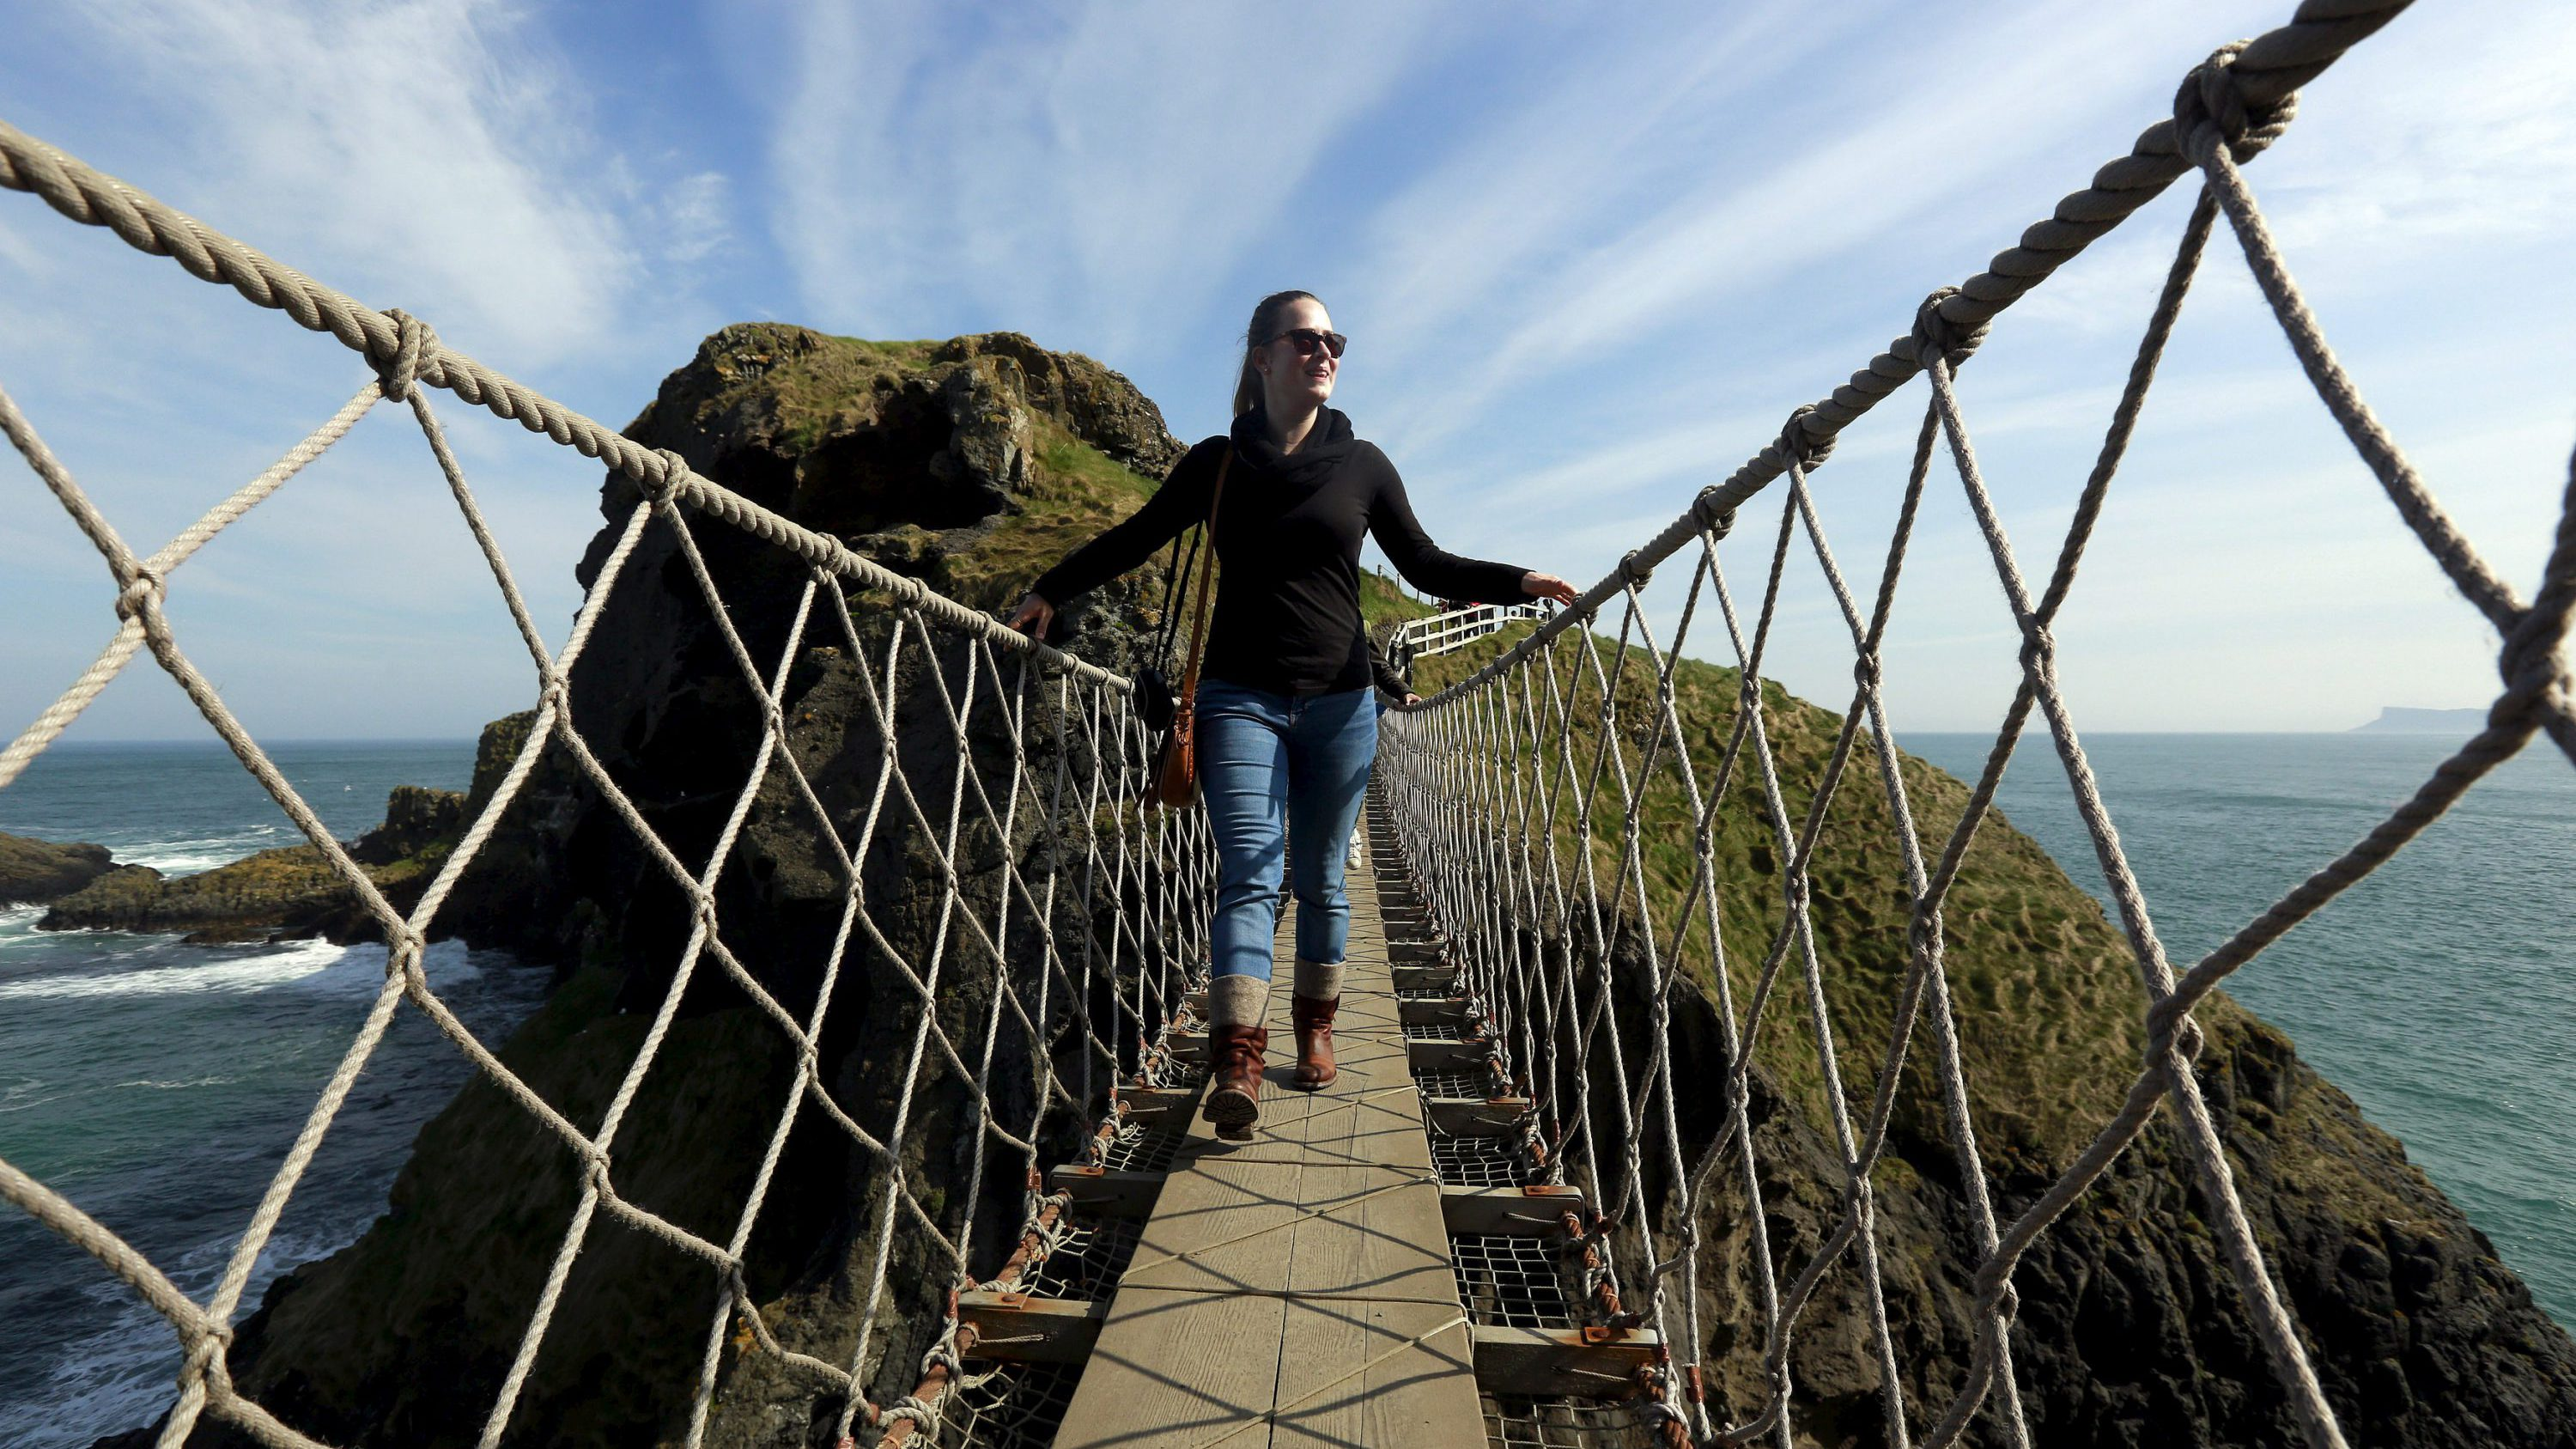 A tourist makes her way across Carrick-a-Rede Rope Bridge on the Causeway coast, north of Belfast April 8, 2015. The bridge is suspended 30 metres above sea level and was built 350 years ago by salmon fishermen, according to conservation organisation National Trust.